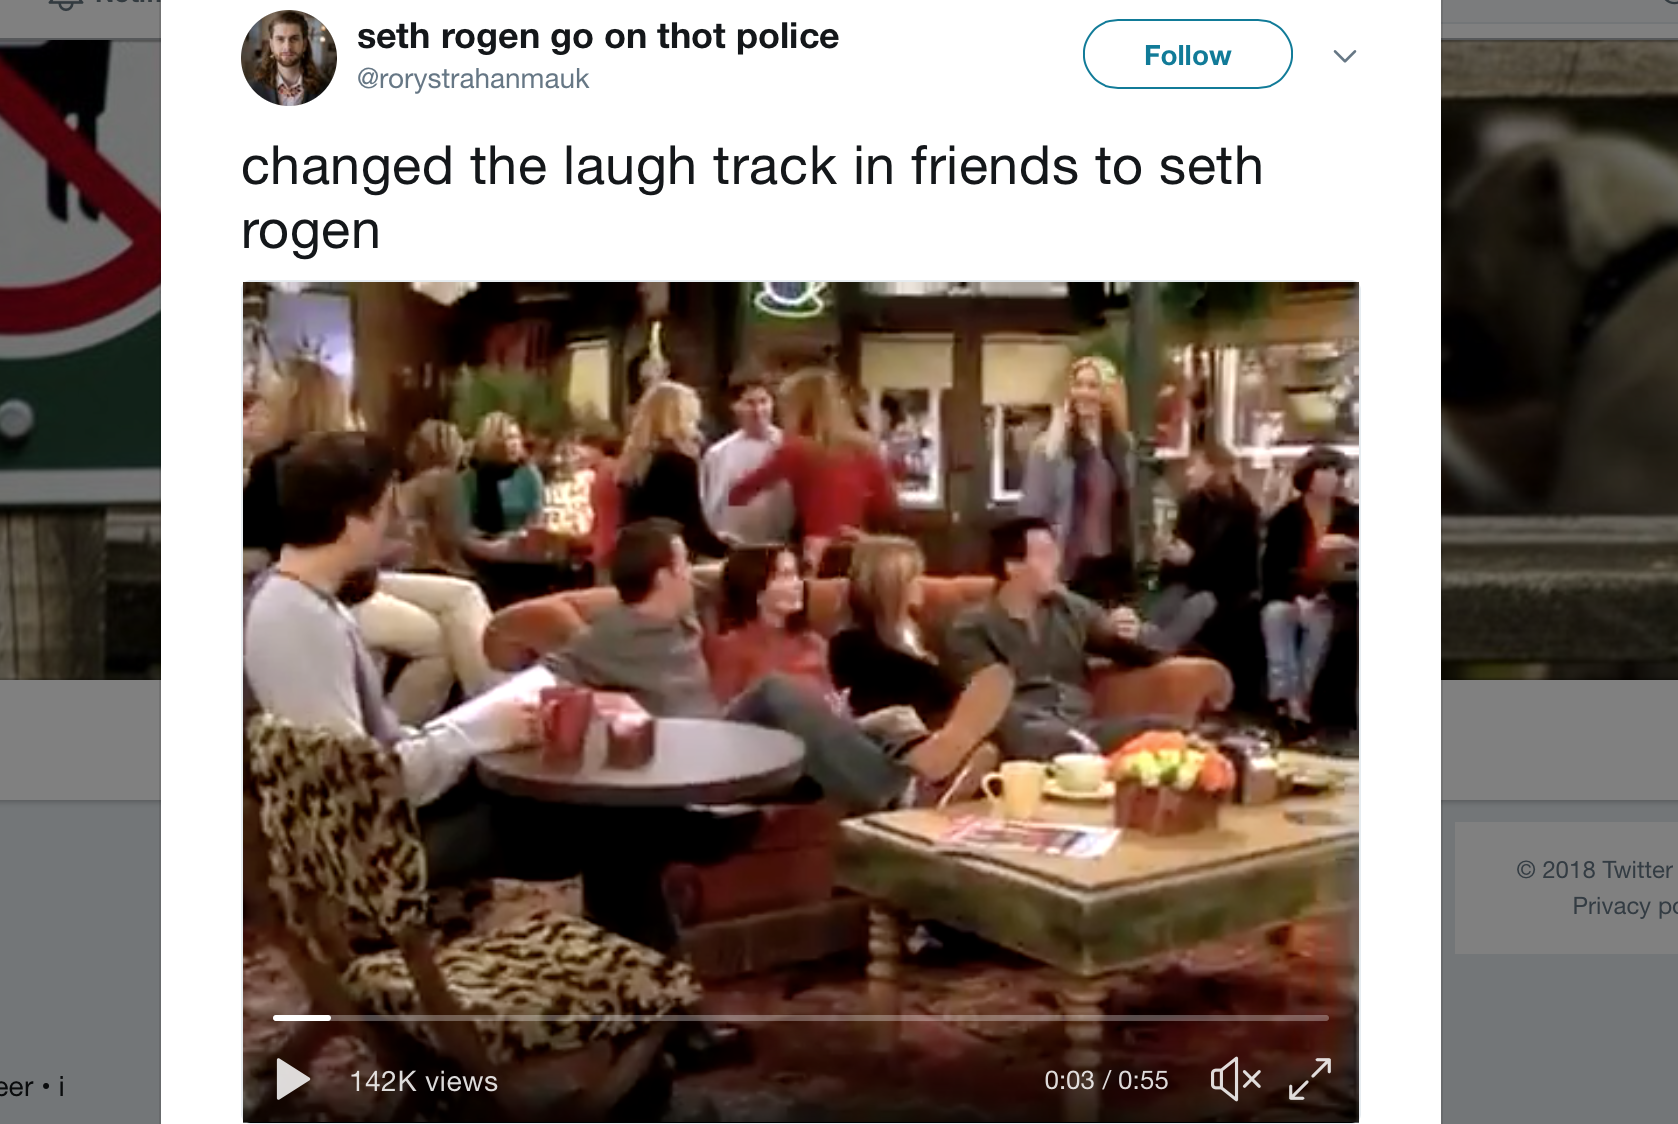 Friends With Seth Rogen Instead Of A Laugh Track